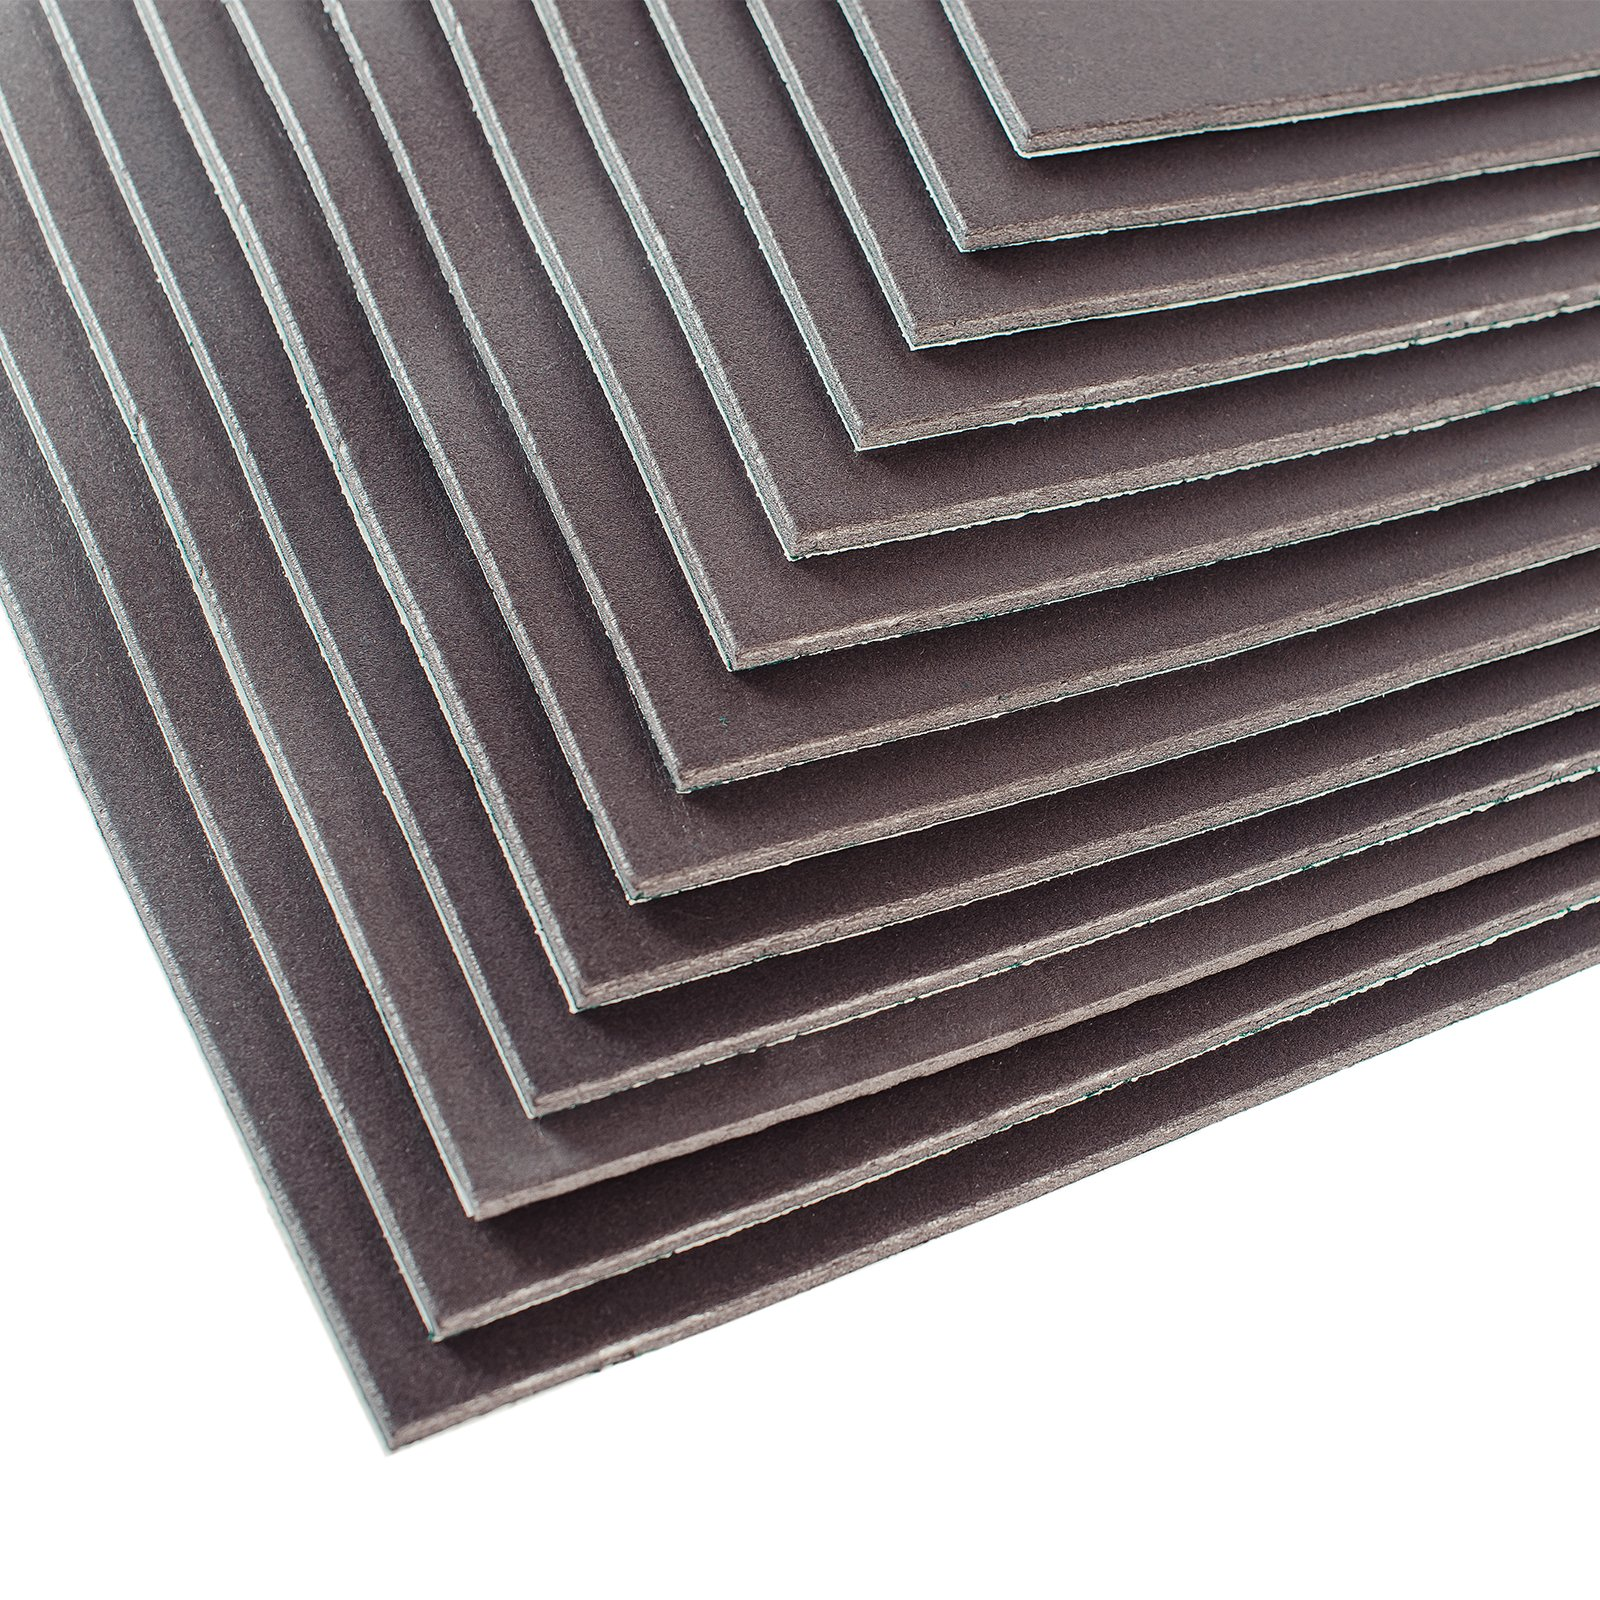 Noico Green 170 mil 18 sqft Сar waterproof sound insulation, heat and cool liner, Self-adhesive Closed Cell PE Foam Deadening Material (1/6'' Thick Sound Deadener)